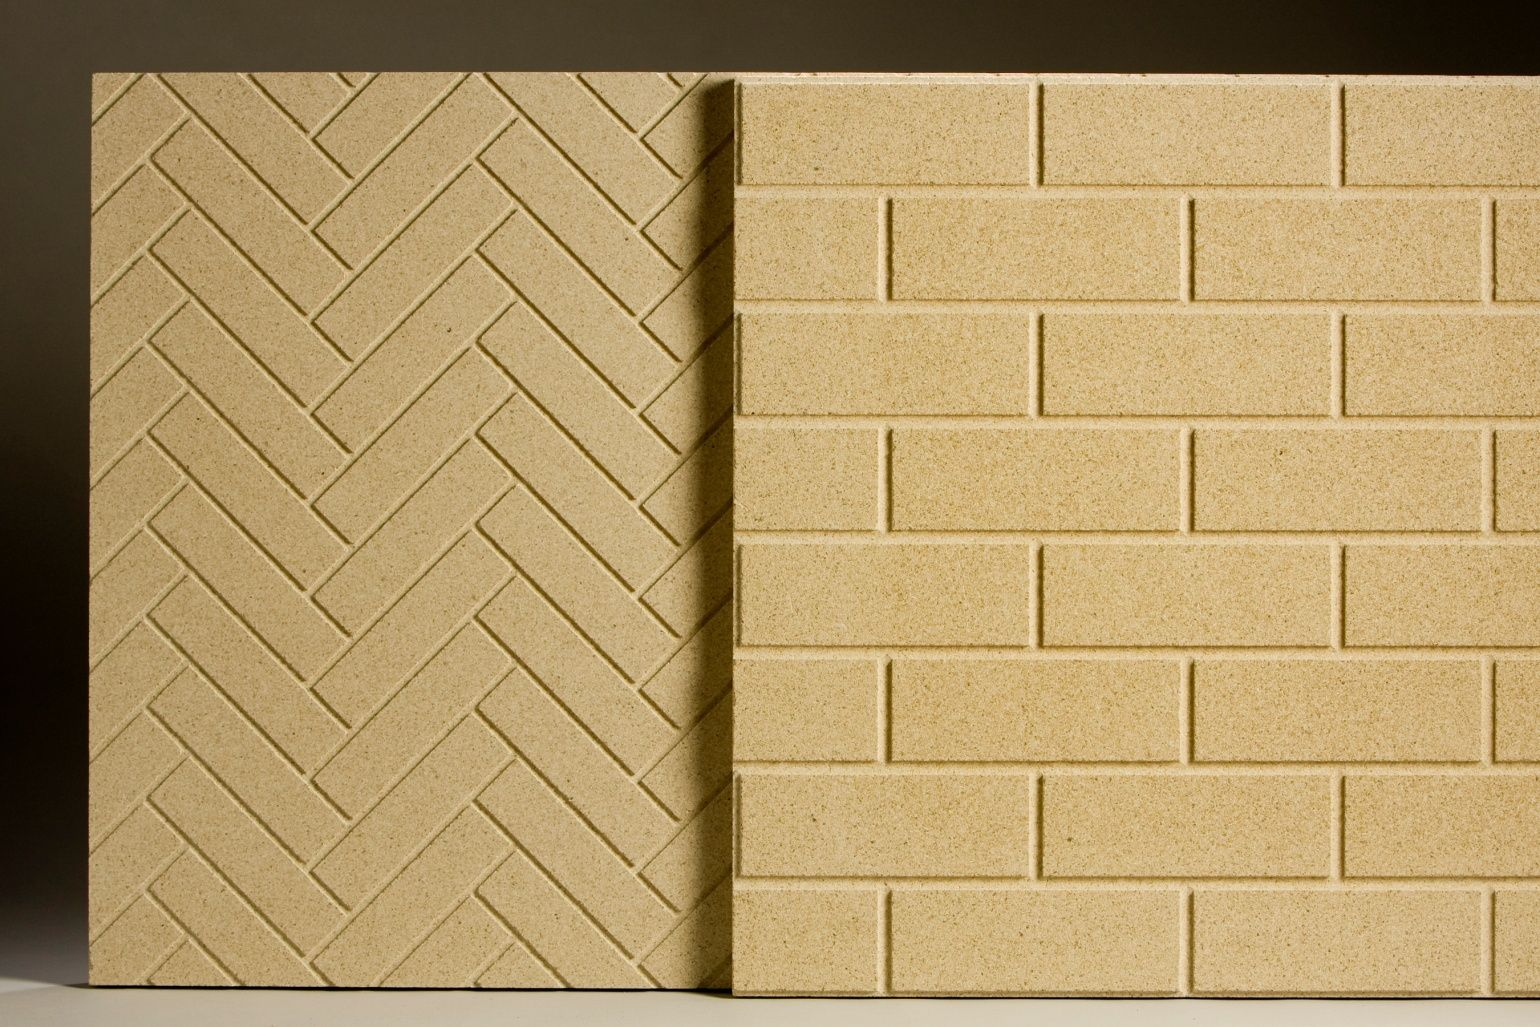 Neuex Vermiculite Replacement Panels Paneling Fireplace Mantle Downloading Data